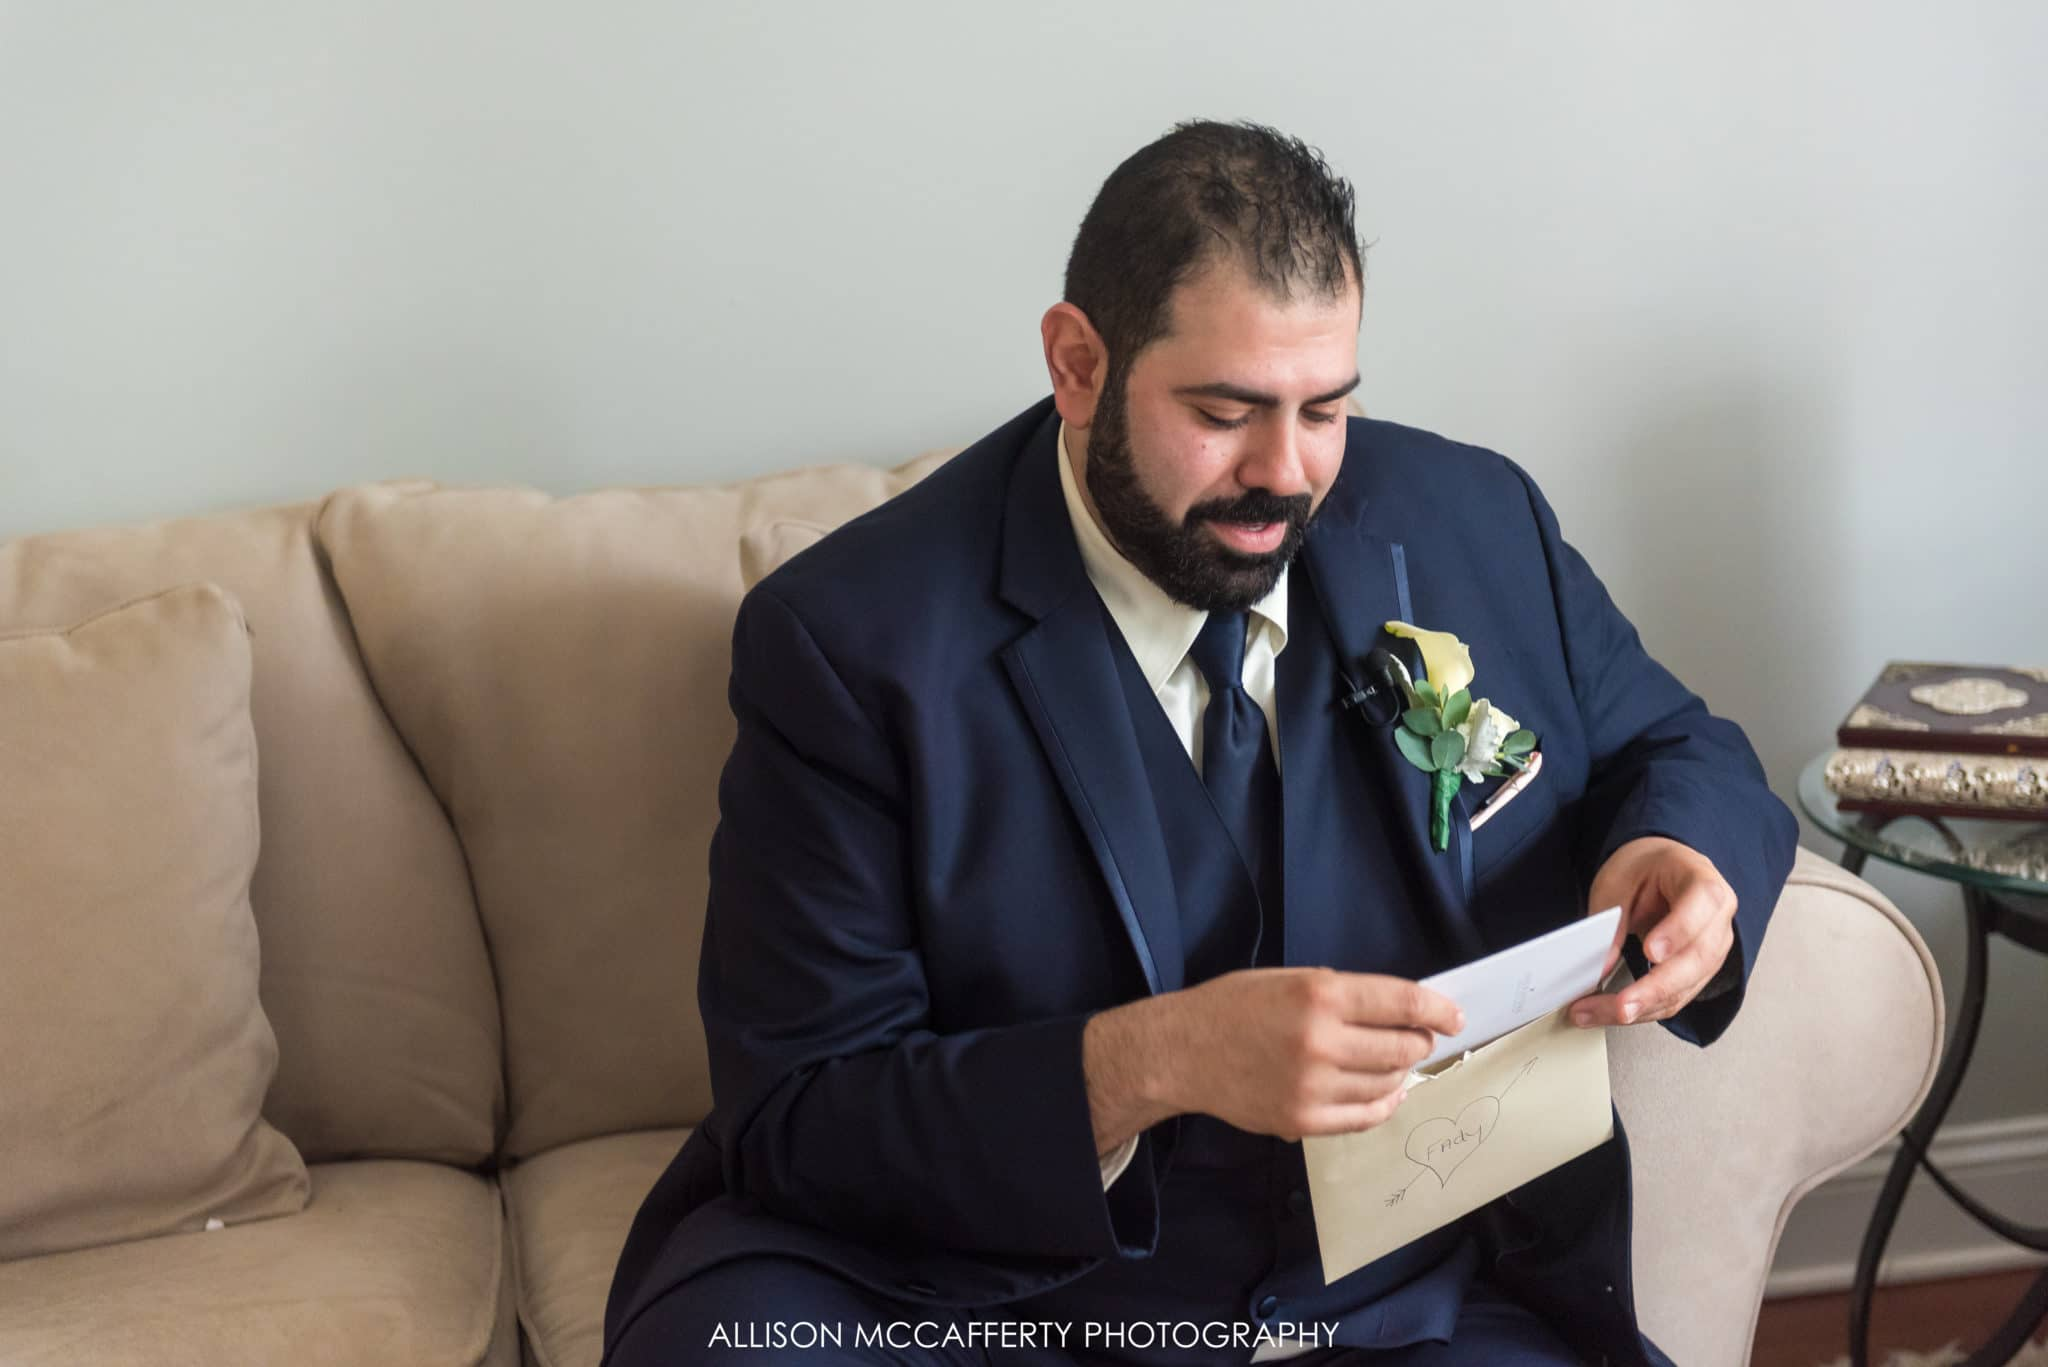 Groom reading a card from his bride to be